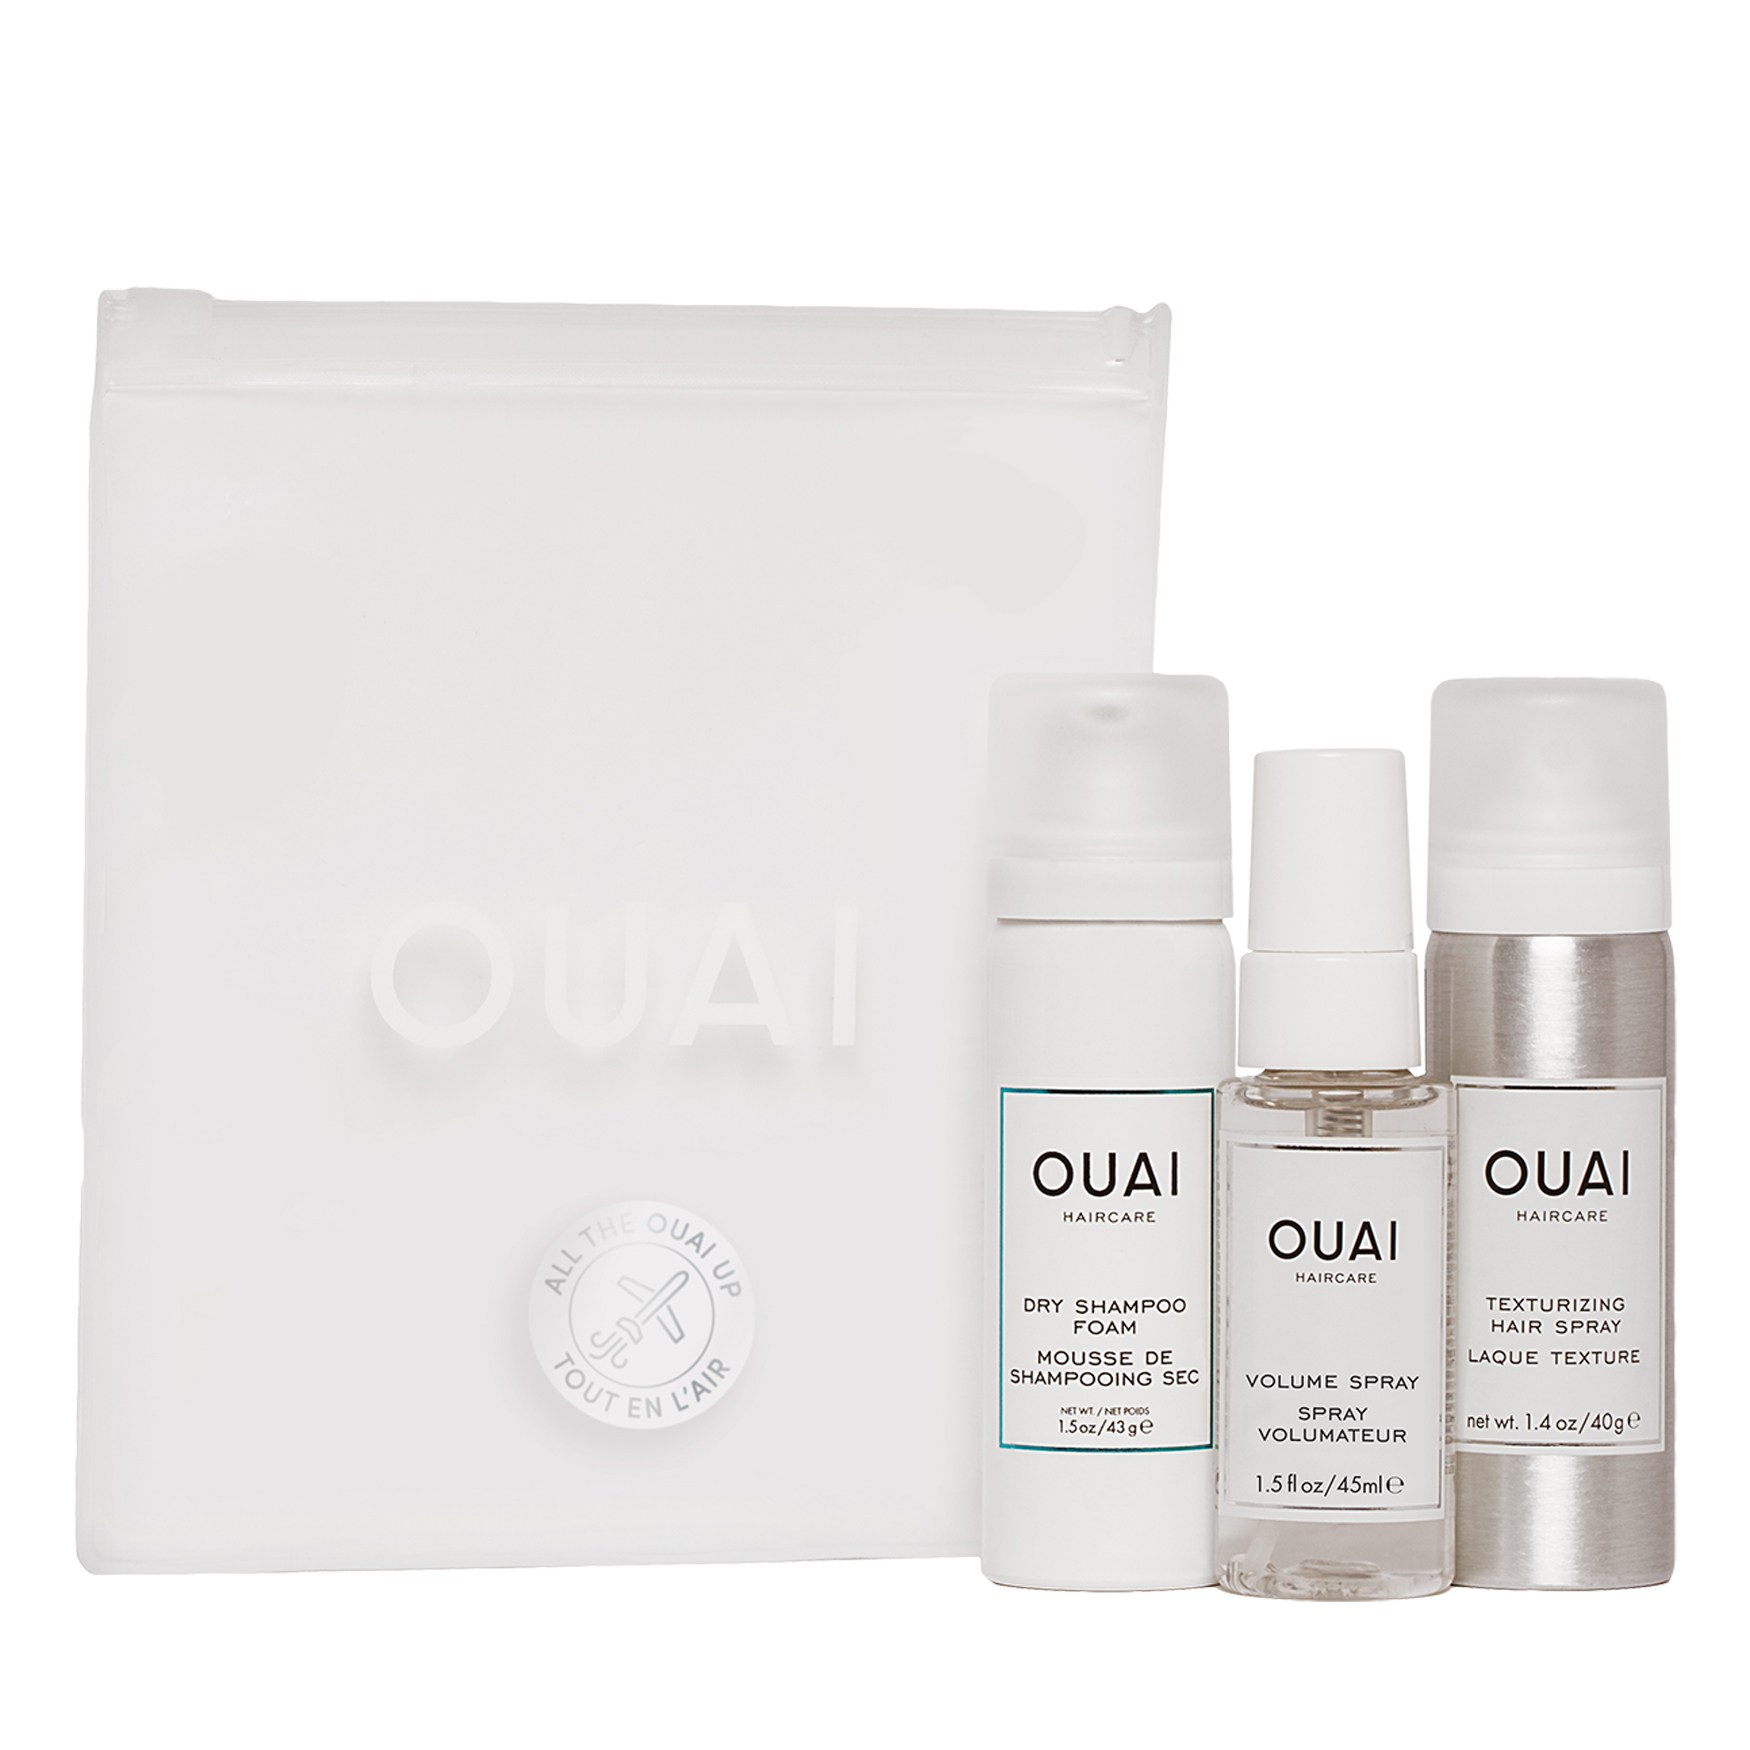 All The Ouai Up Kit, , large